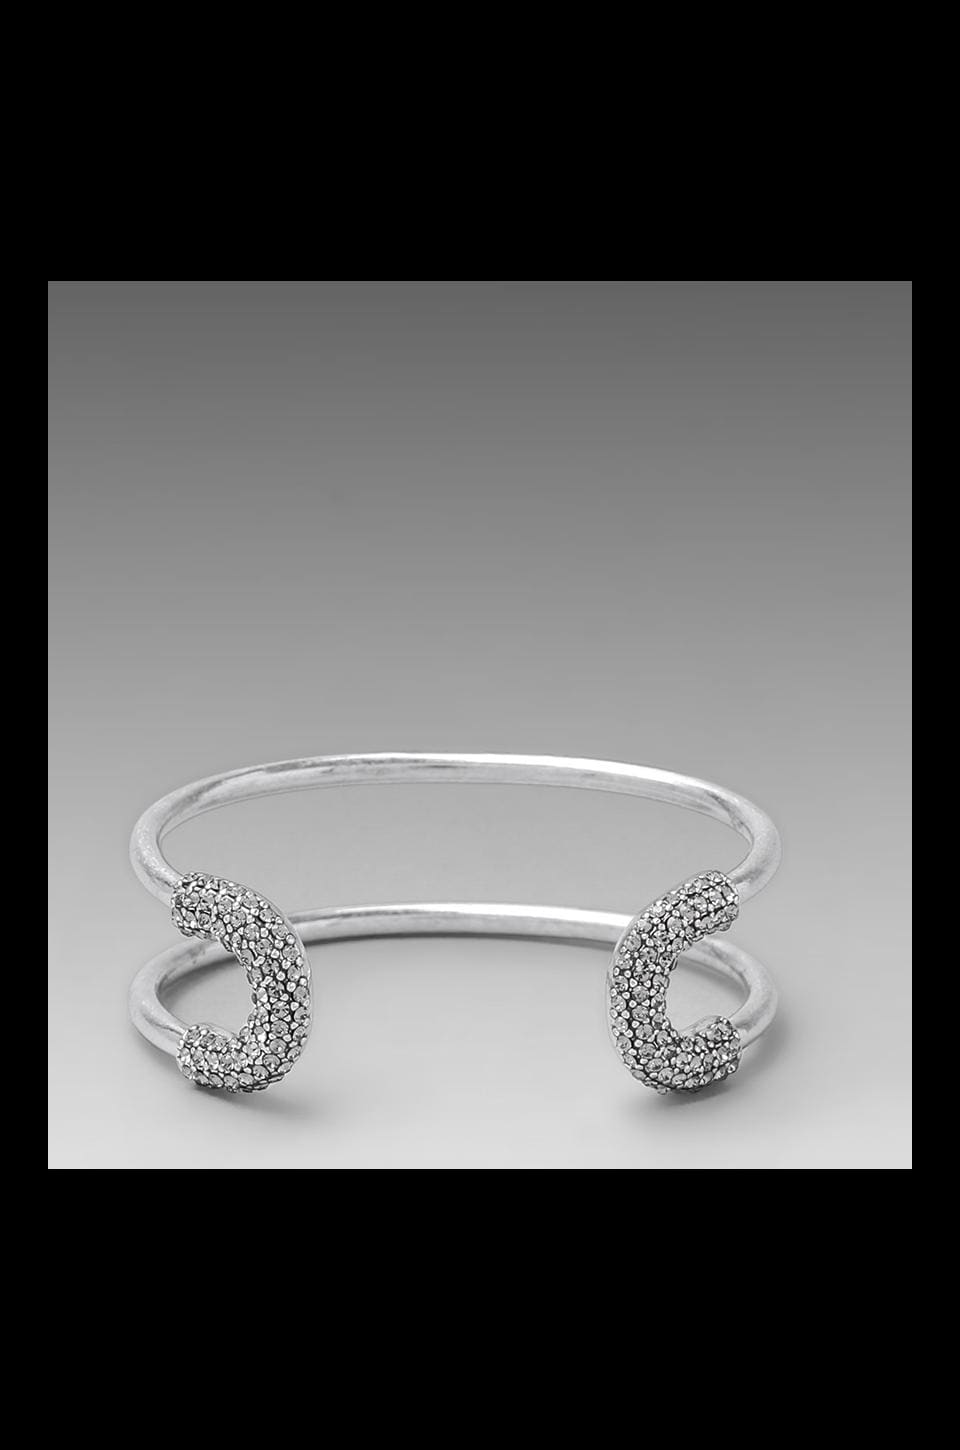 Giles & Brother Giles Encrusted Skinny Cortina Cuff in Antique Silver & Black Diamond